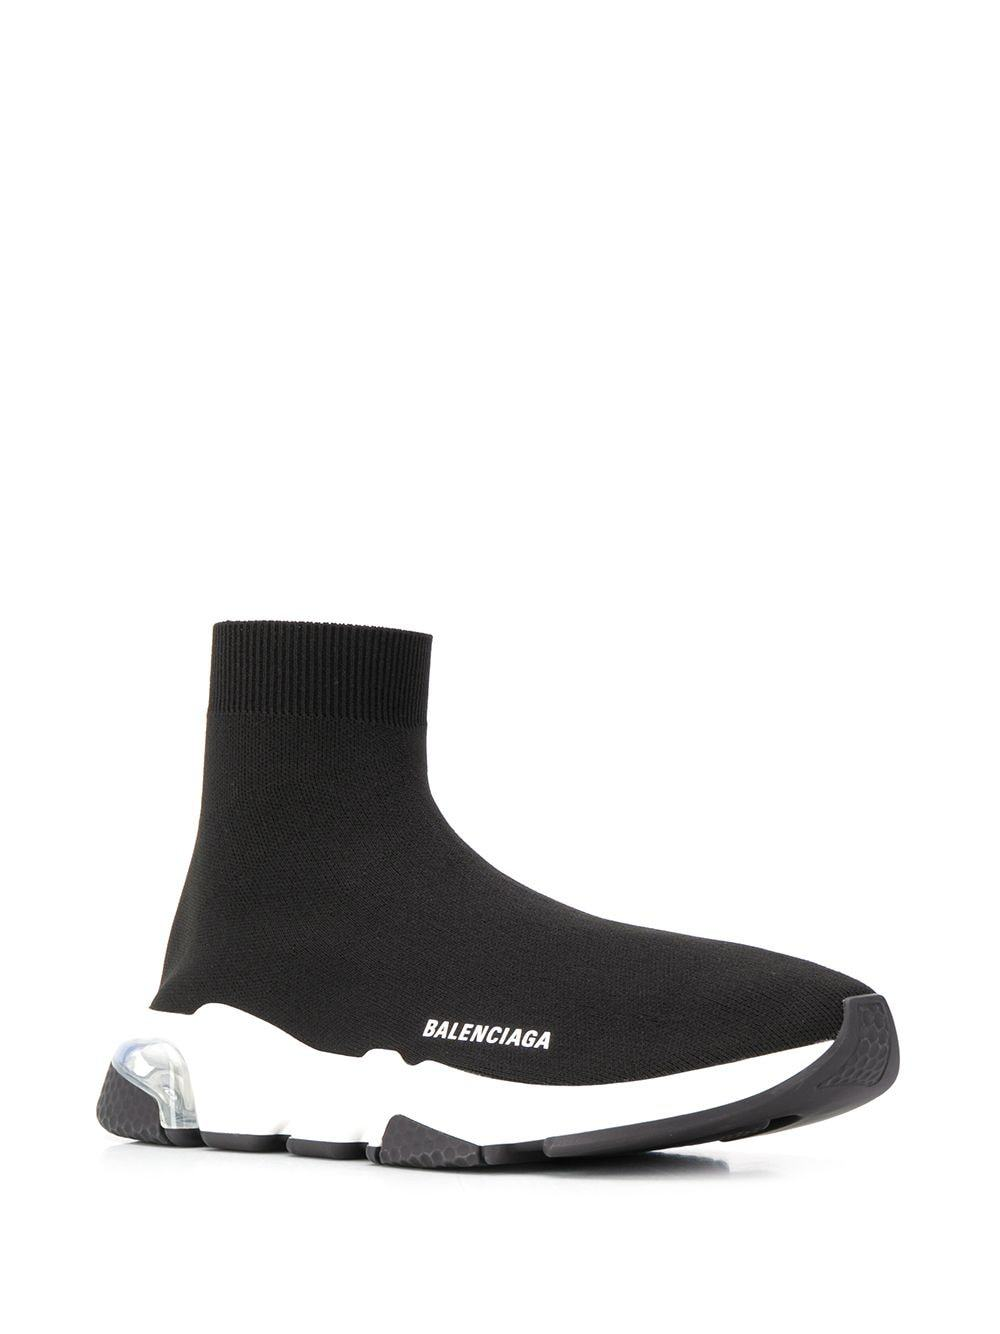 BALENCIAGA speed LT sneakers black/white